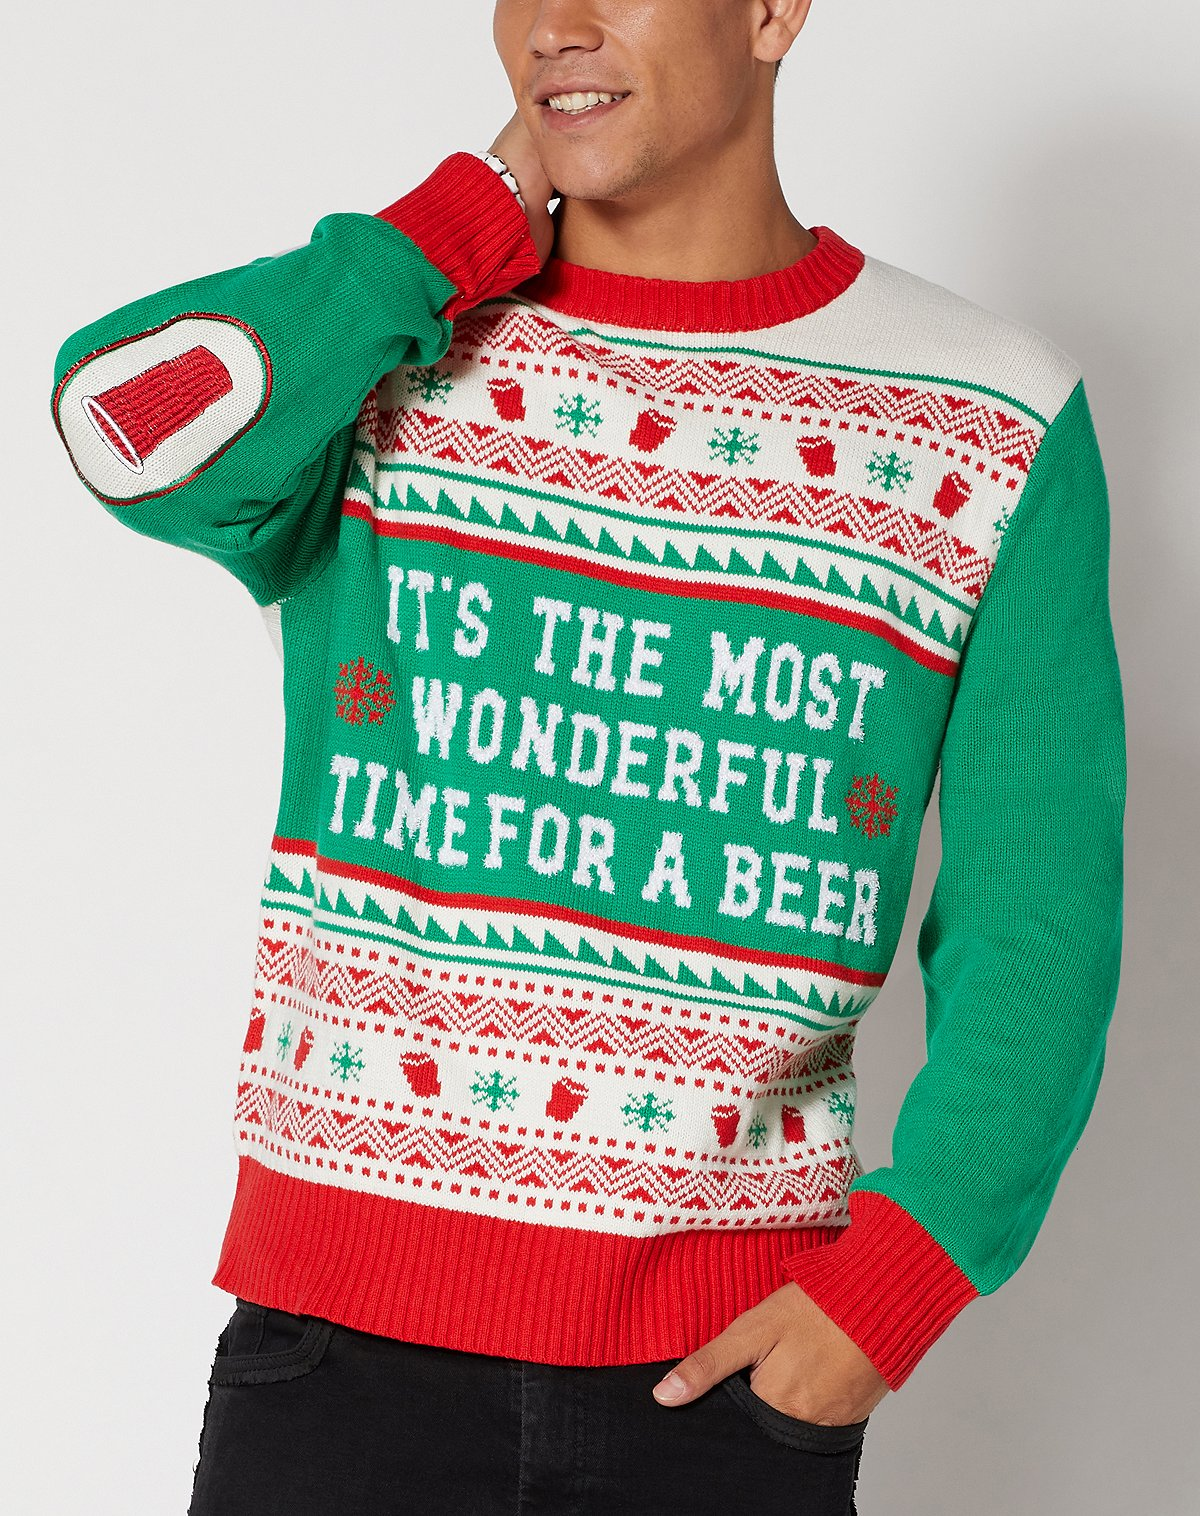 Funny Ugly Christmas Sweater.Top 10 Funny Ugly Christmas Sweaters Of 2018 Spencers